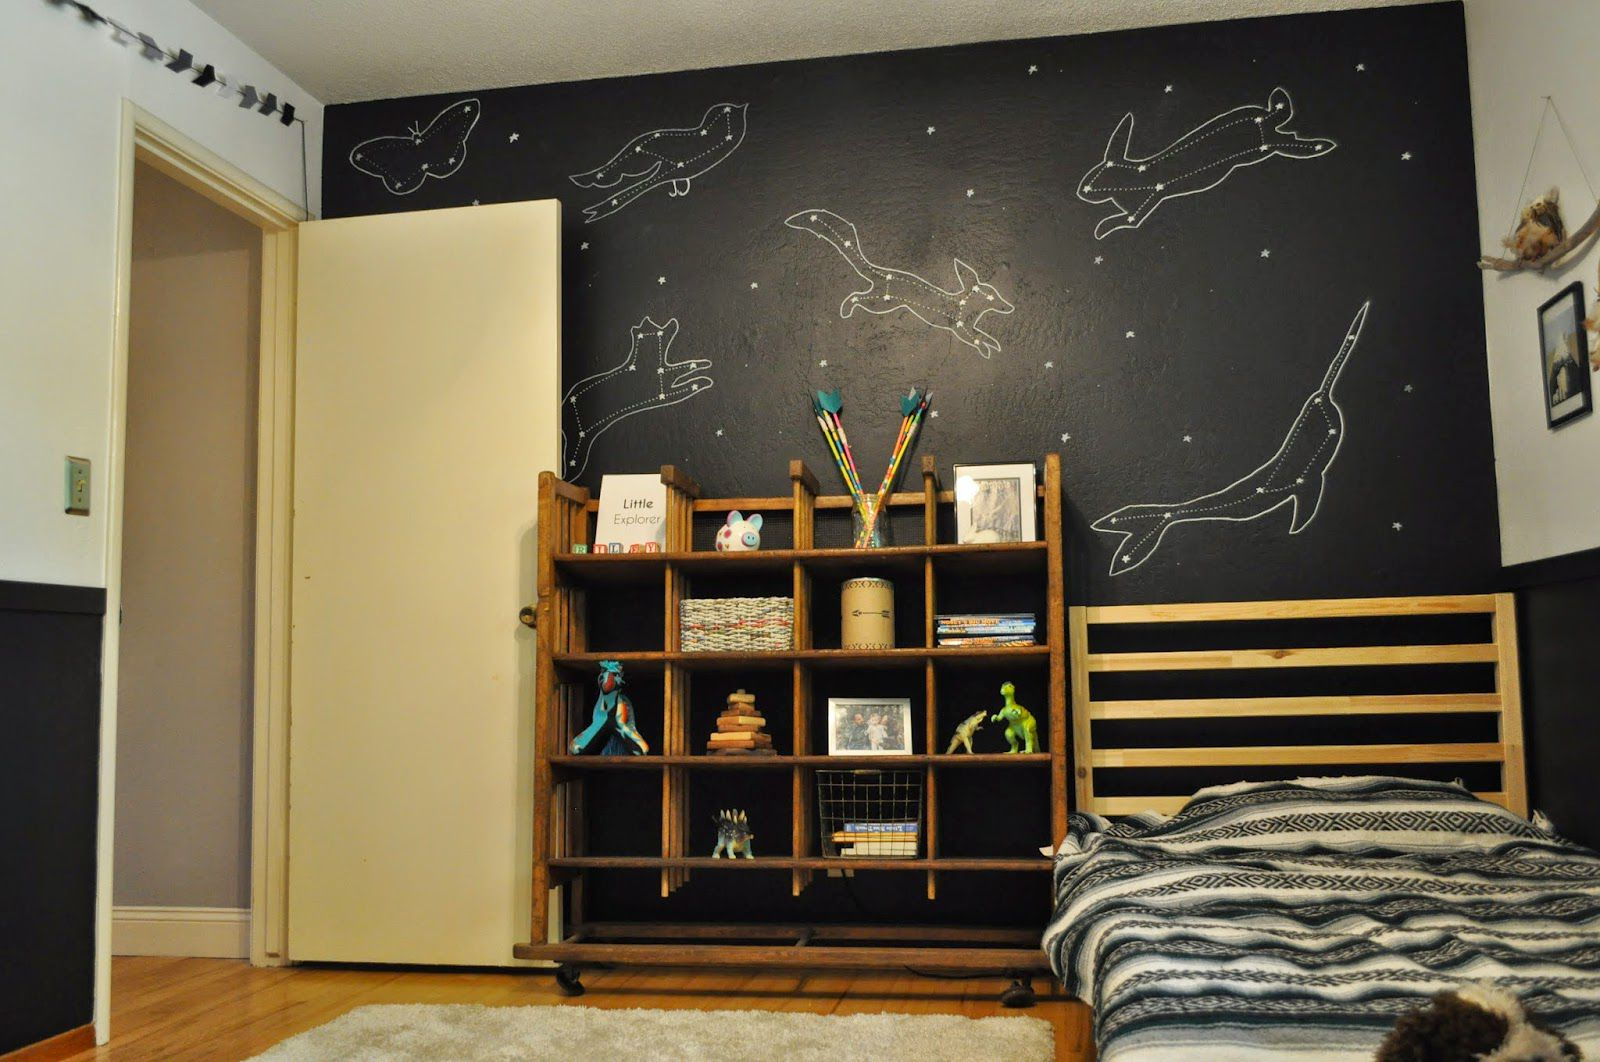 18 Space Themed Rooms For Kids Illuminated Circuit Board Coffee Table Is Geek Diy Chic Decor